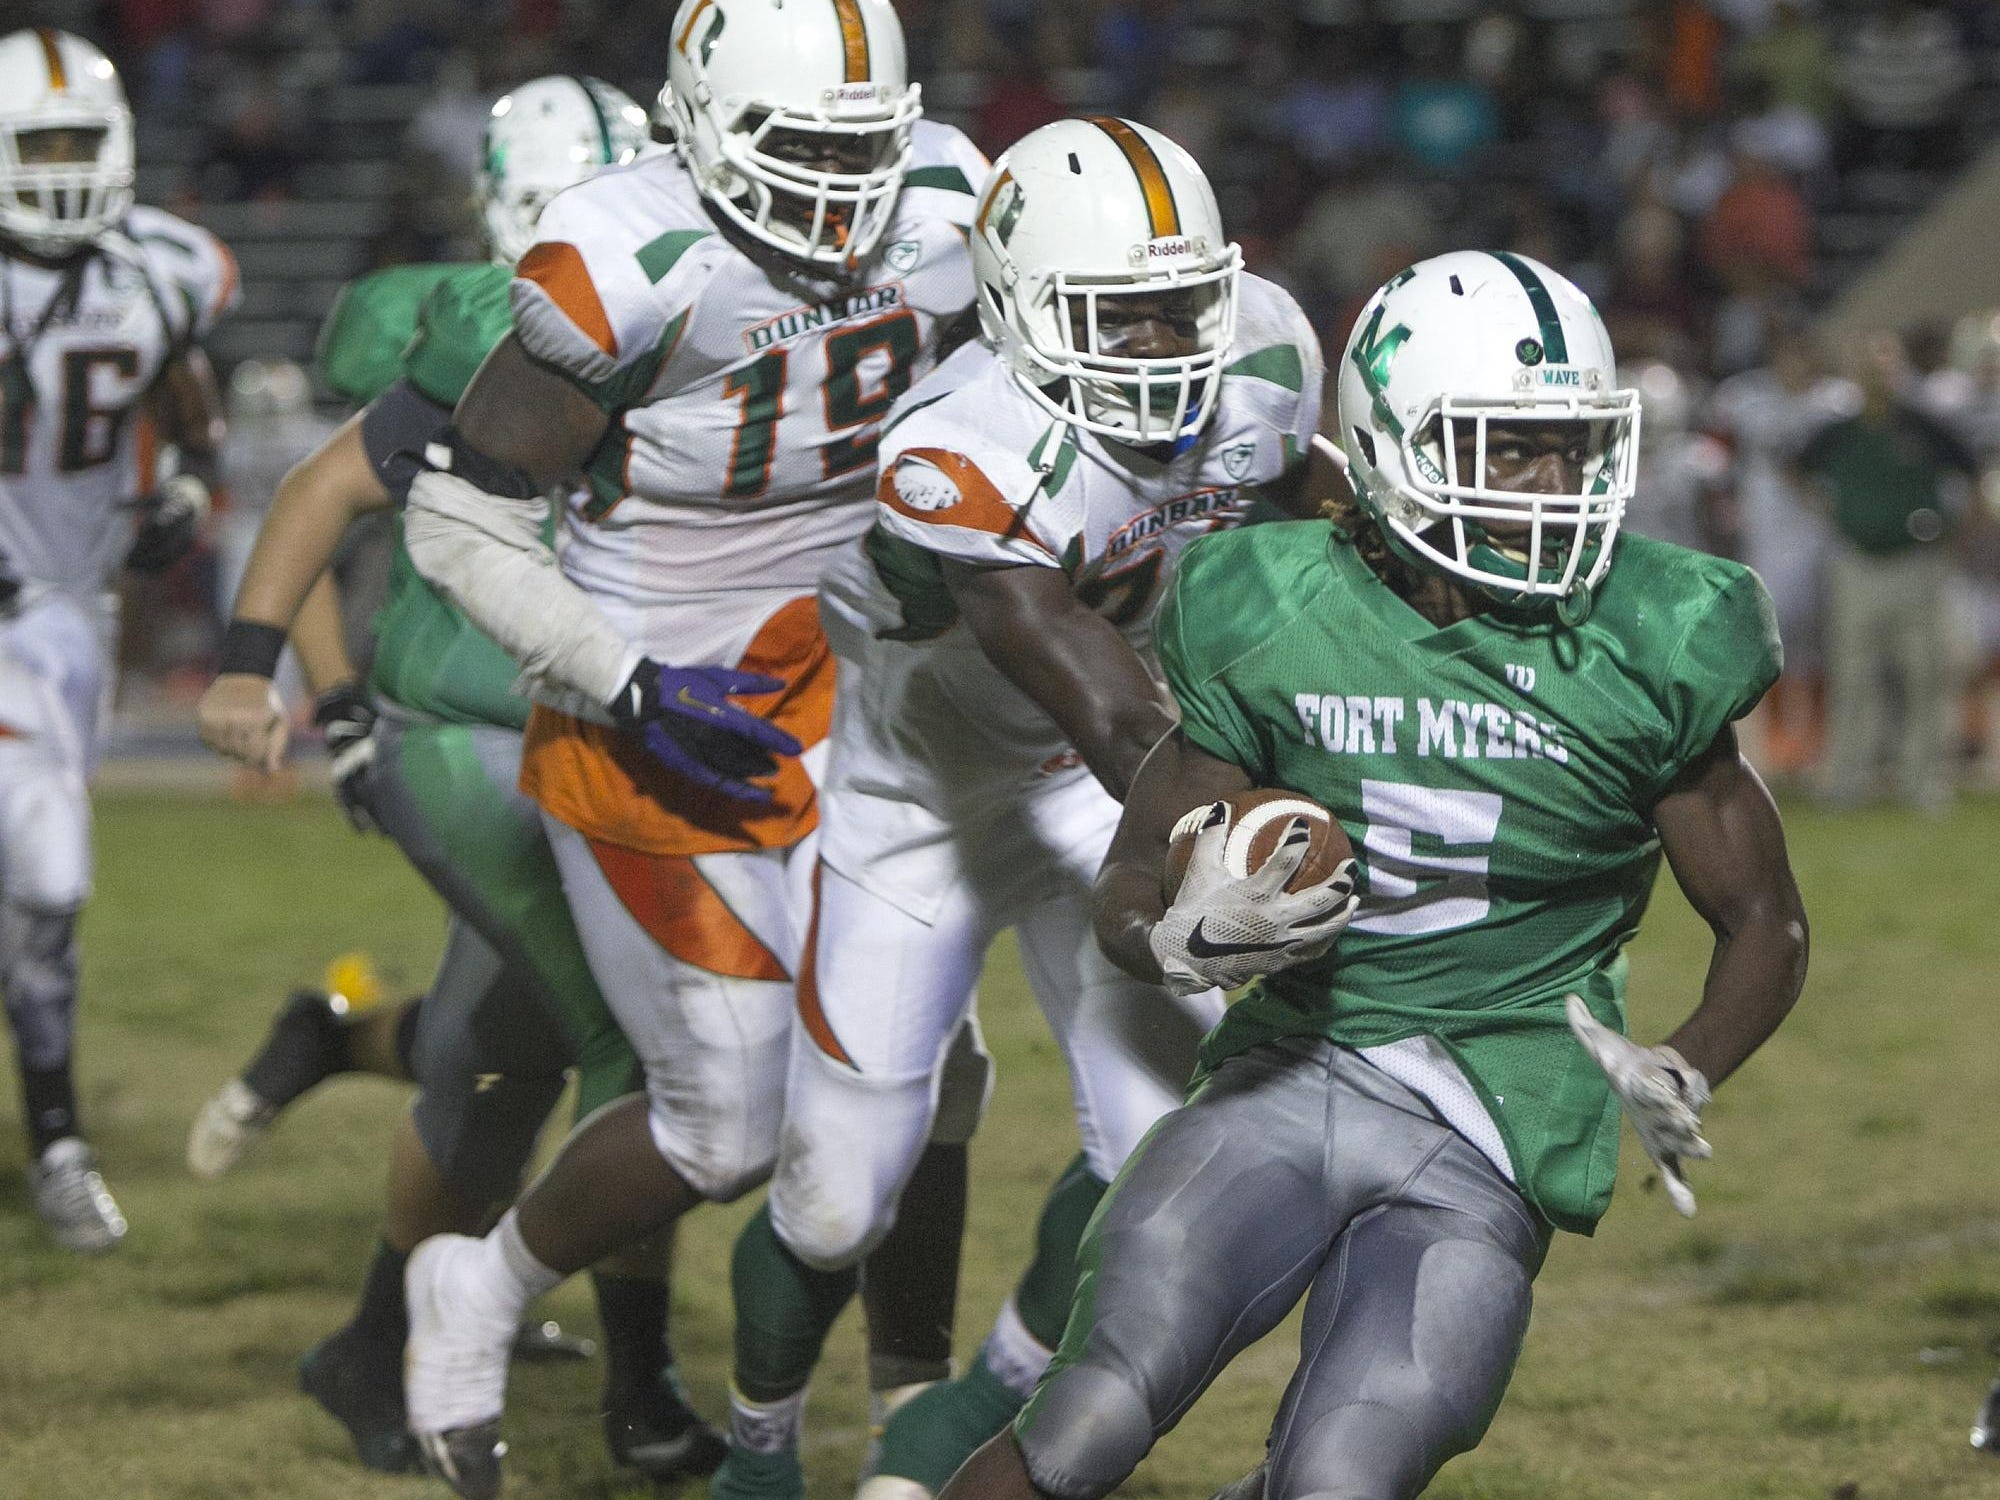 Fort Myers ball carrier Darrian Felix, right, leads Dunbar defenders Donovan Gayle and Shanon Reid as he sprints for positive yardage Friday in Fort Myers.